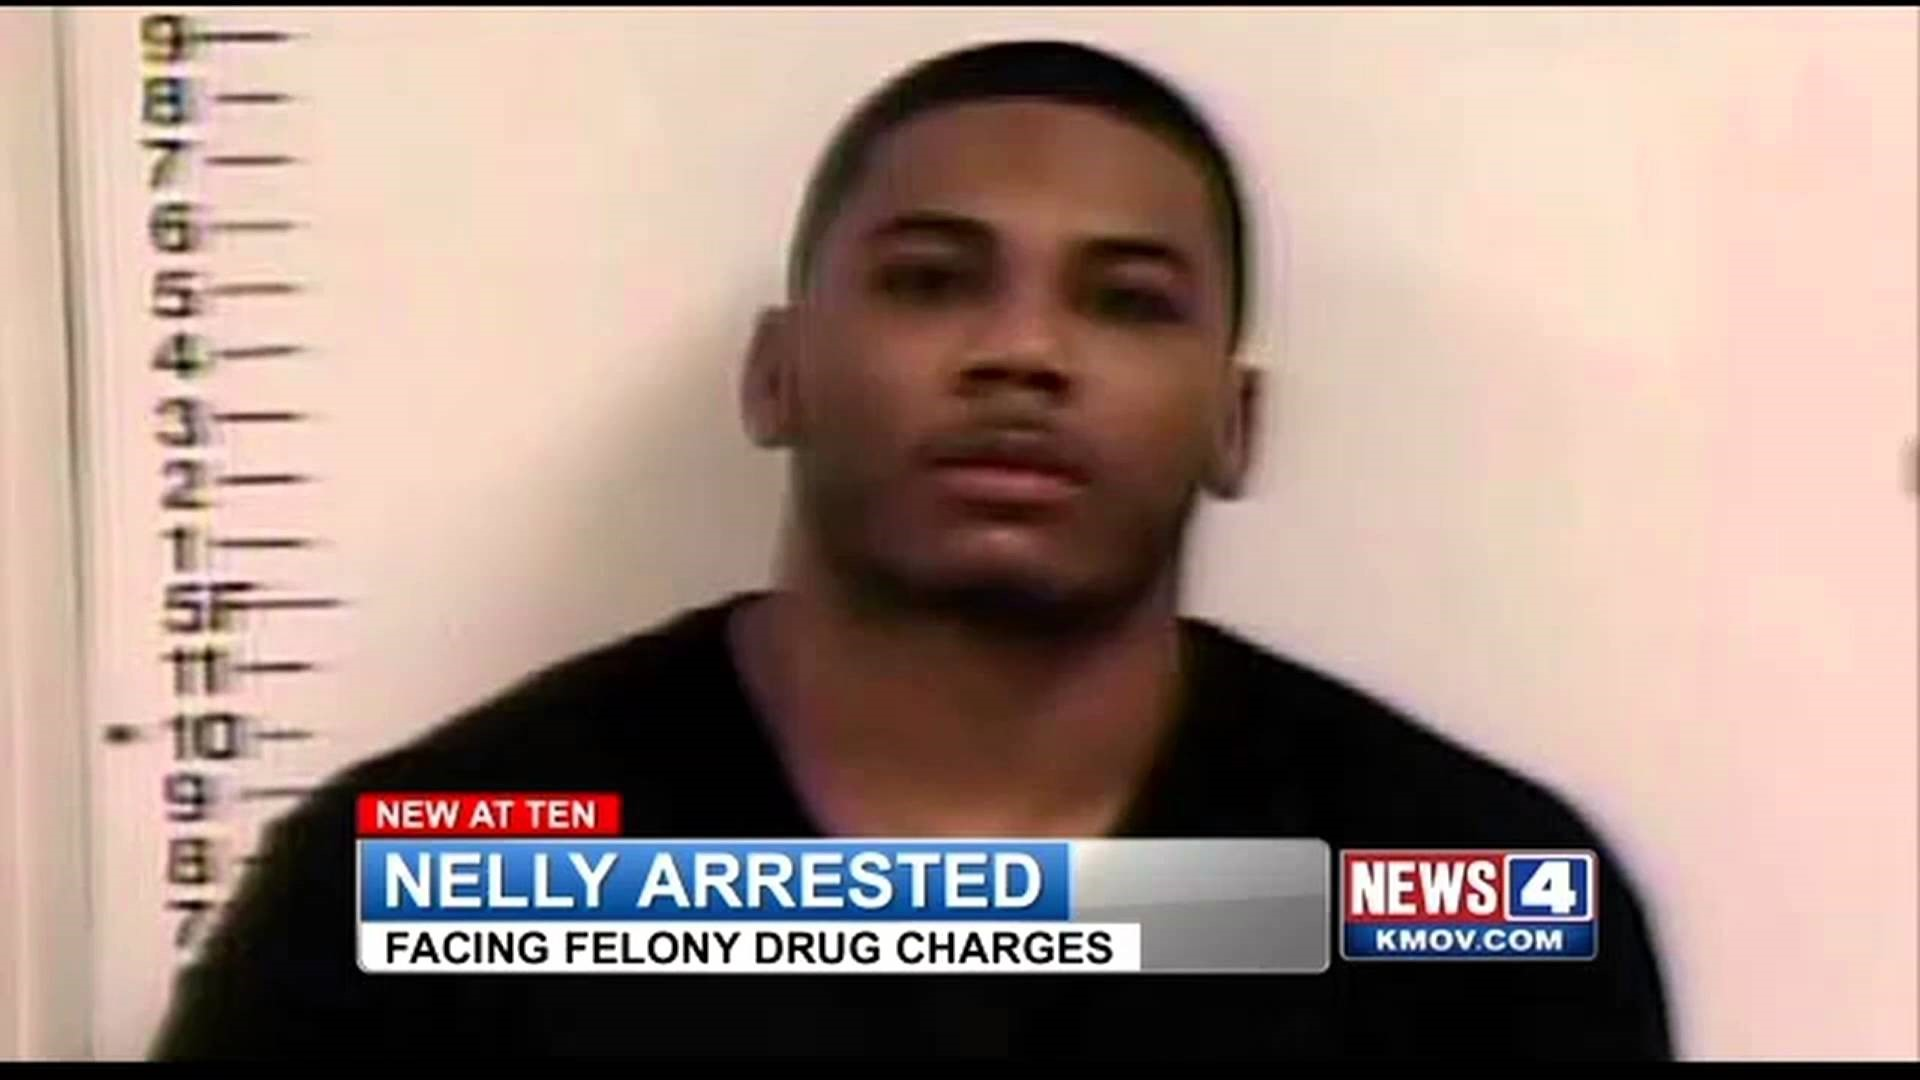 NELLY IS ARRESTED FOR RAPE #4jpg